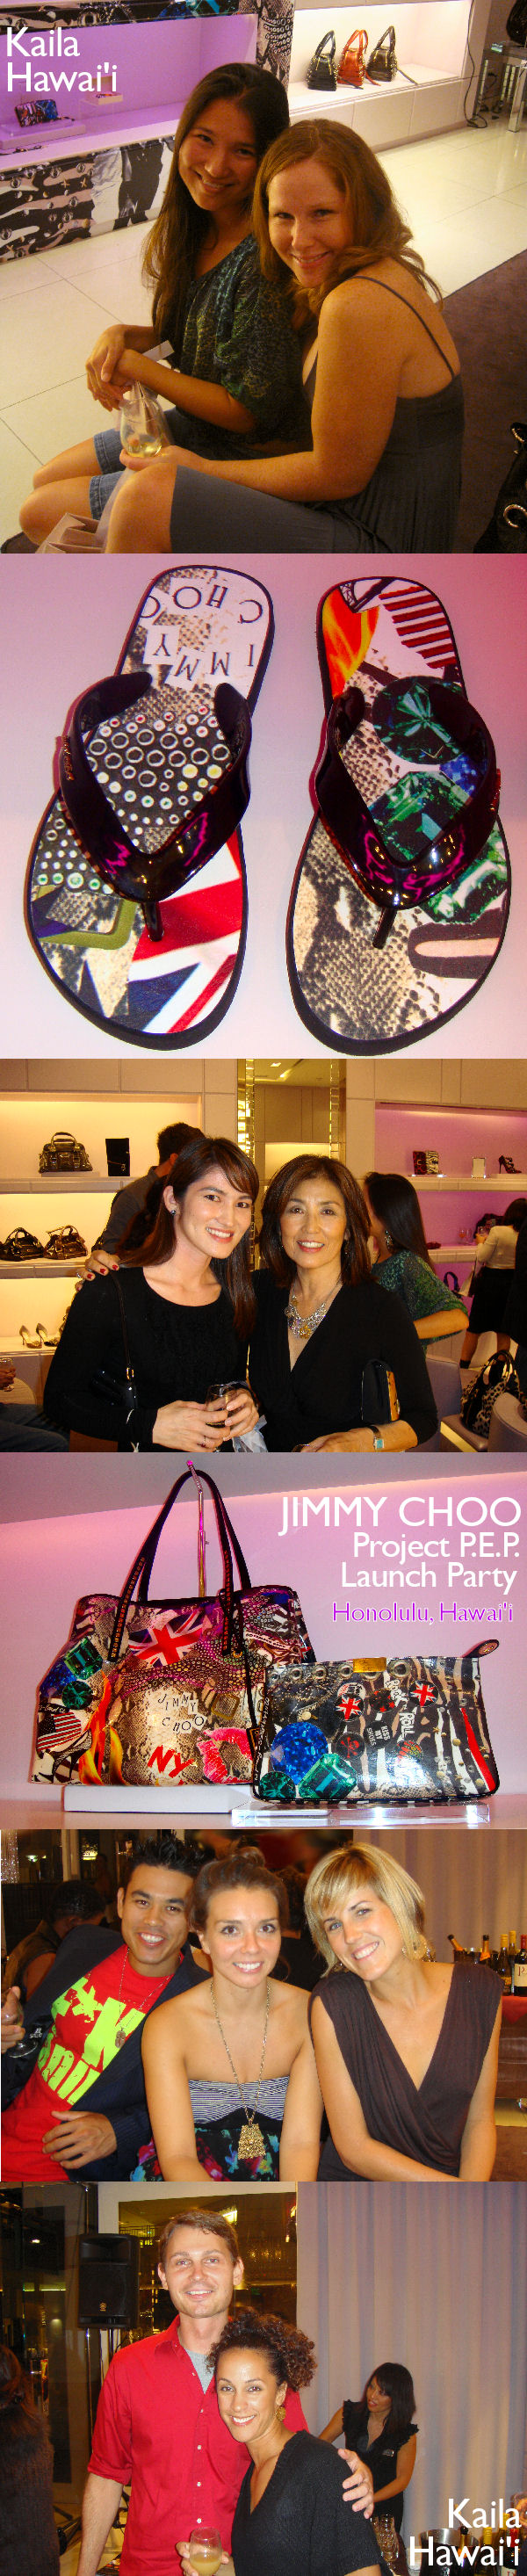 Jimmy Choo Project P.E.P. Launch Party - Honolulu